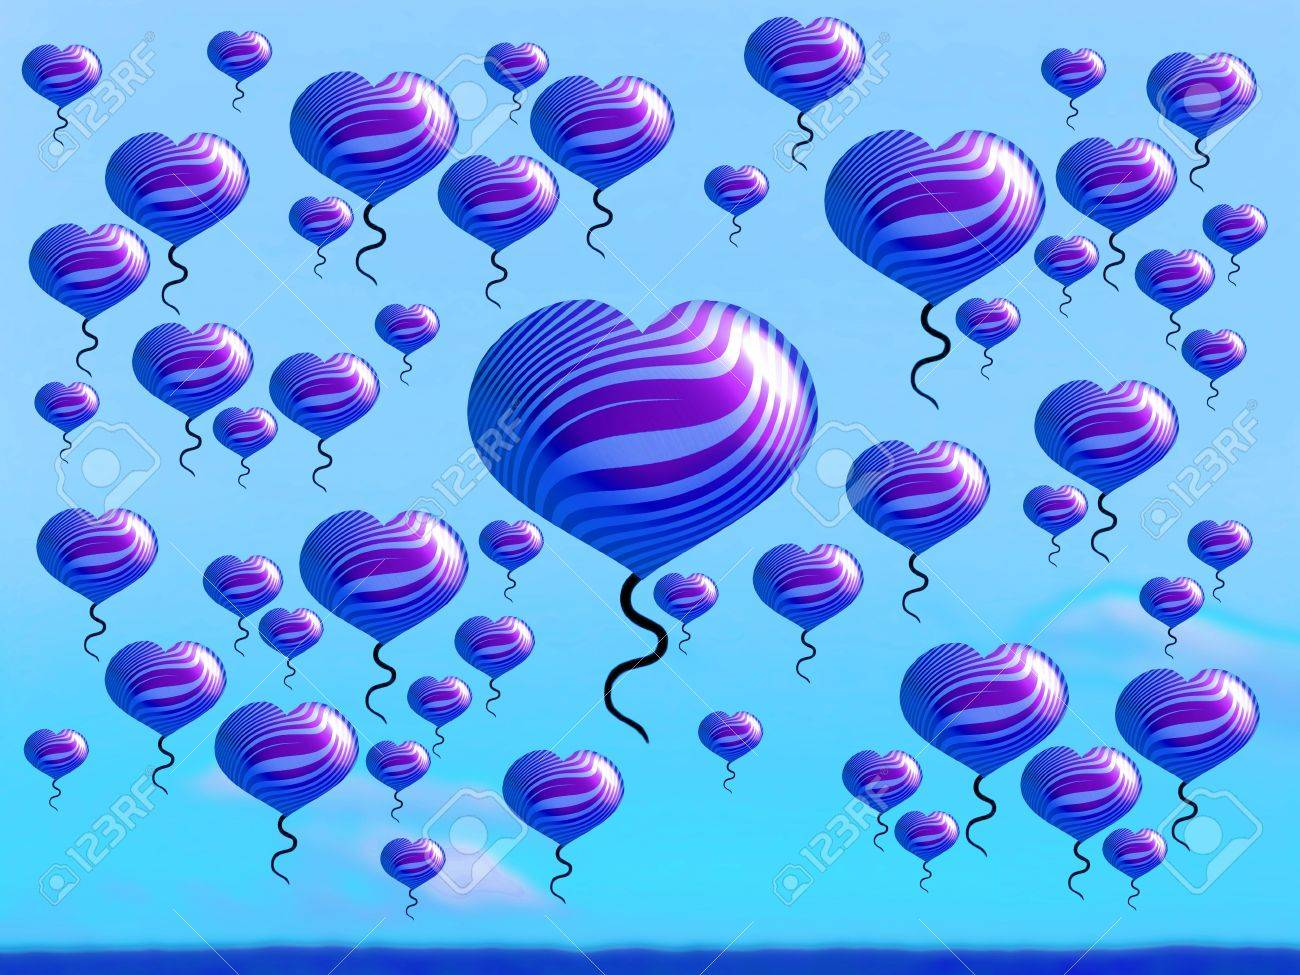 Fantasy landscape with heart balloons covering the sky Stock Photo - 16856640